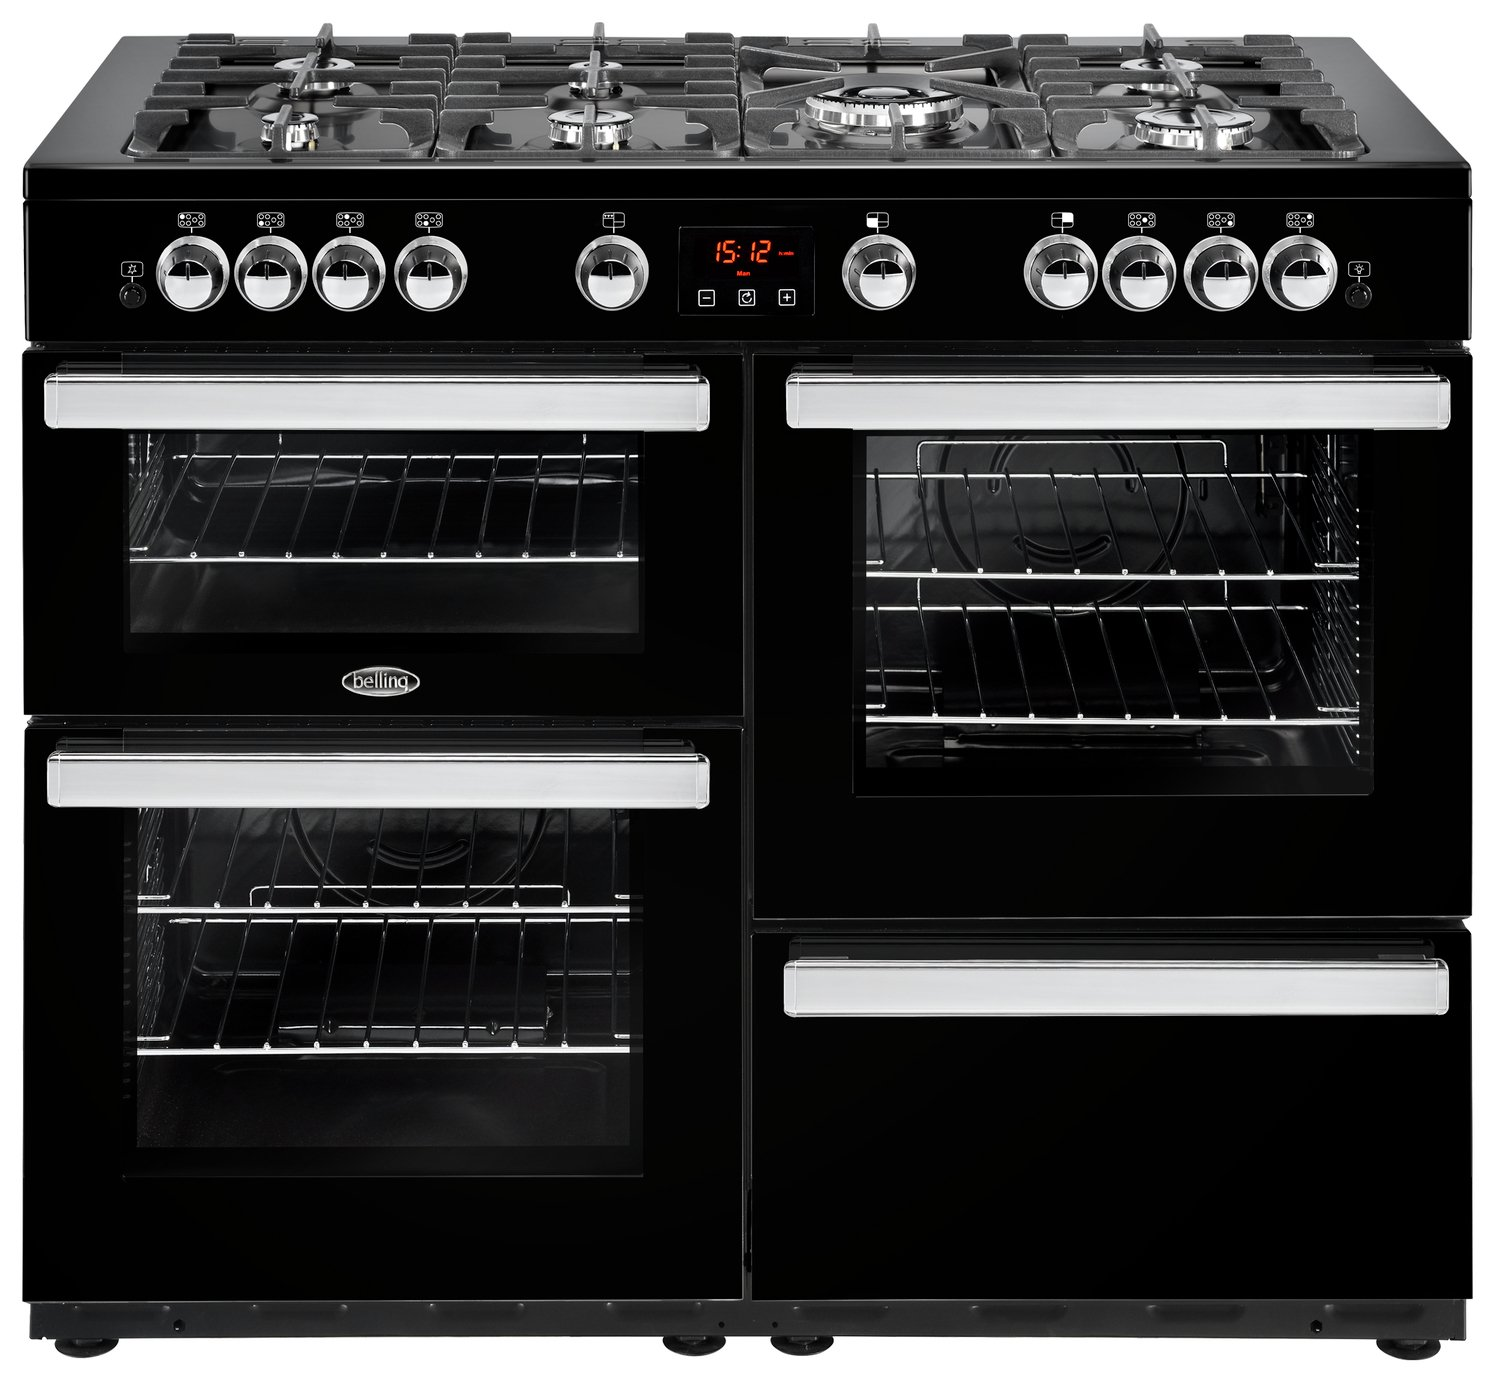 Belling Cookcentre 110G 110cm Gas Range Cooker - Black